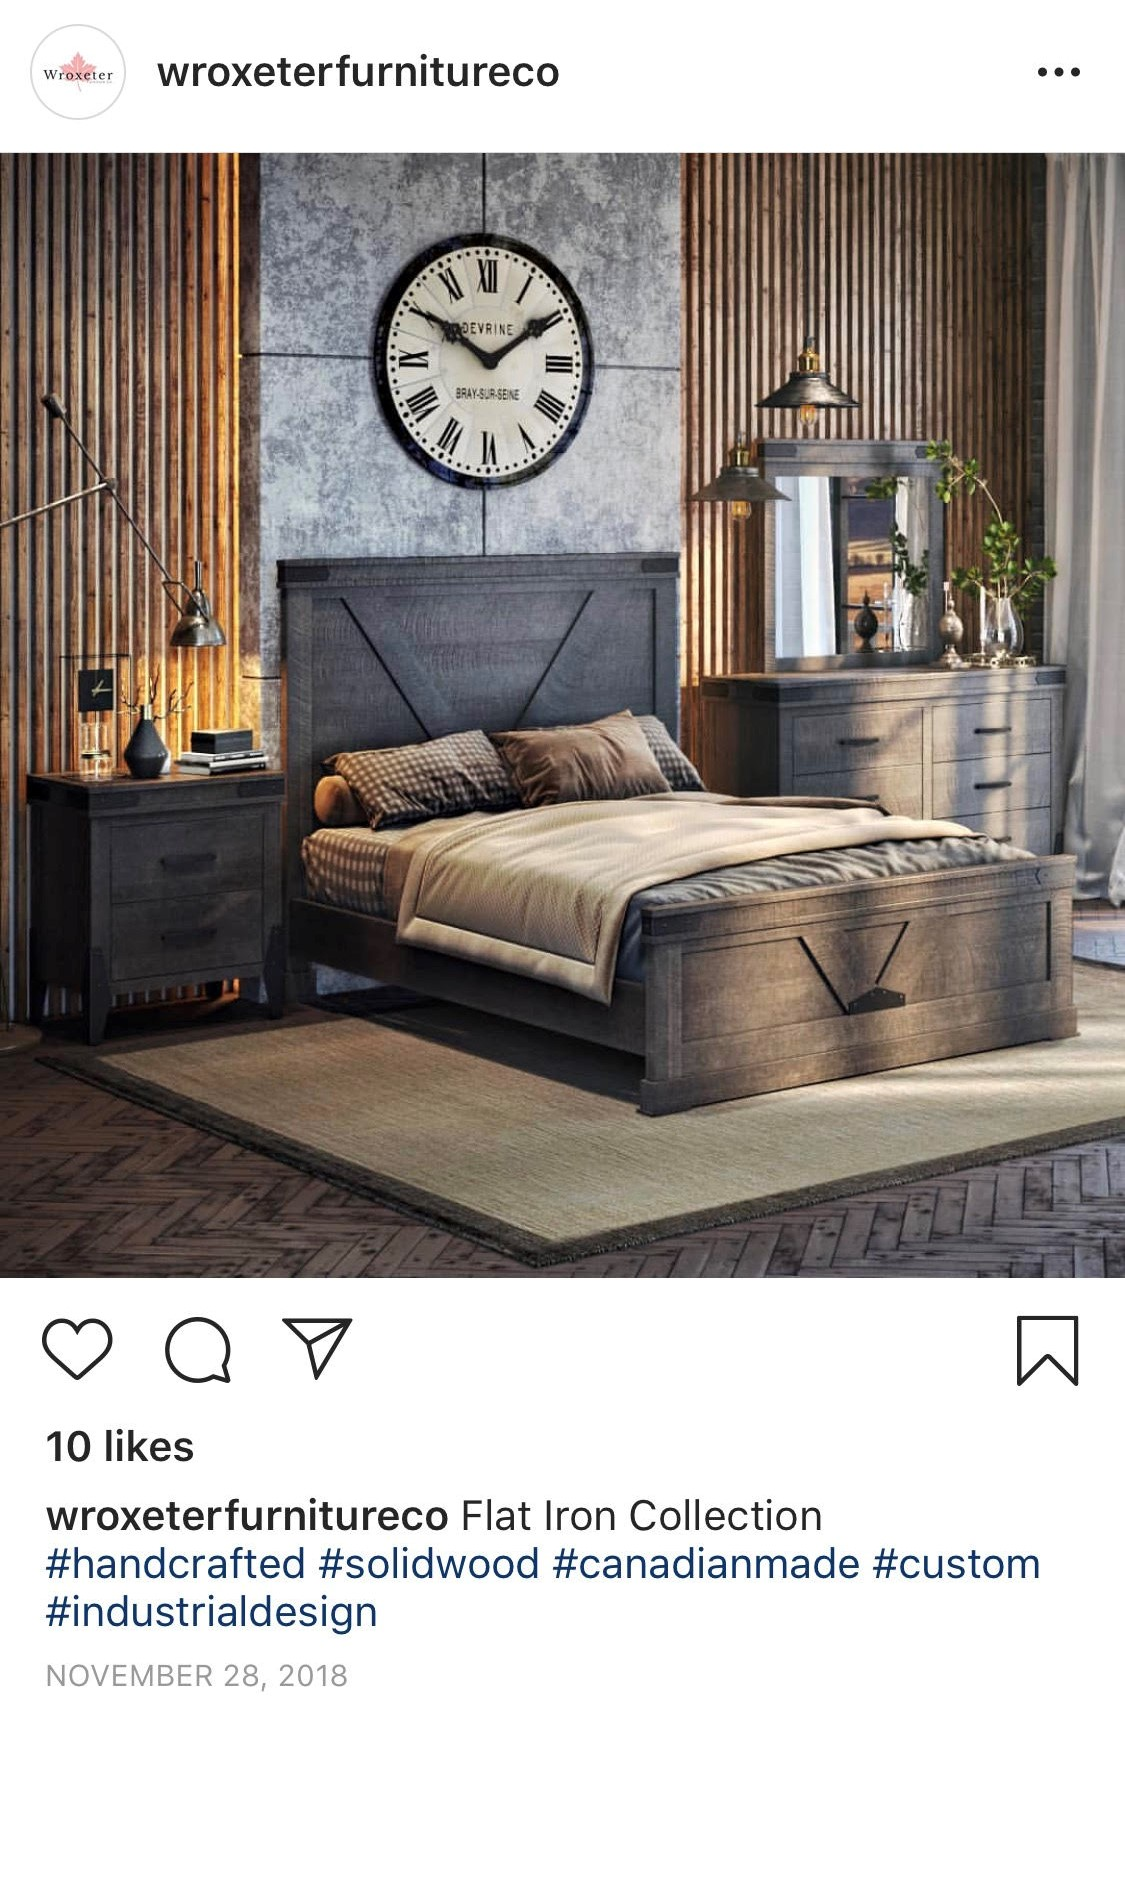 Facebook Ad with Bedroom Furniture 3D Rendering